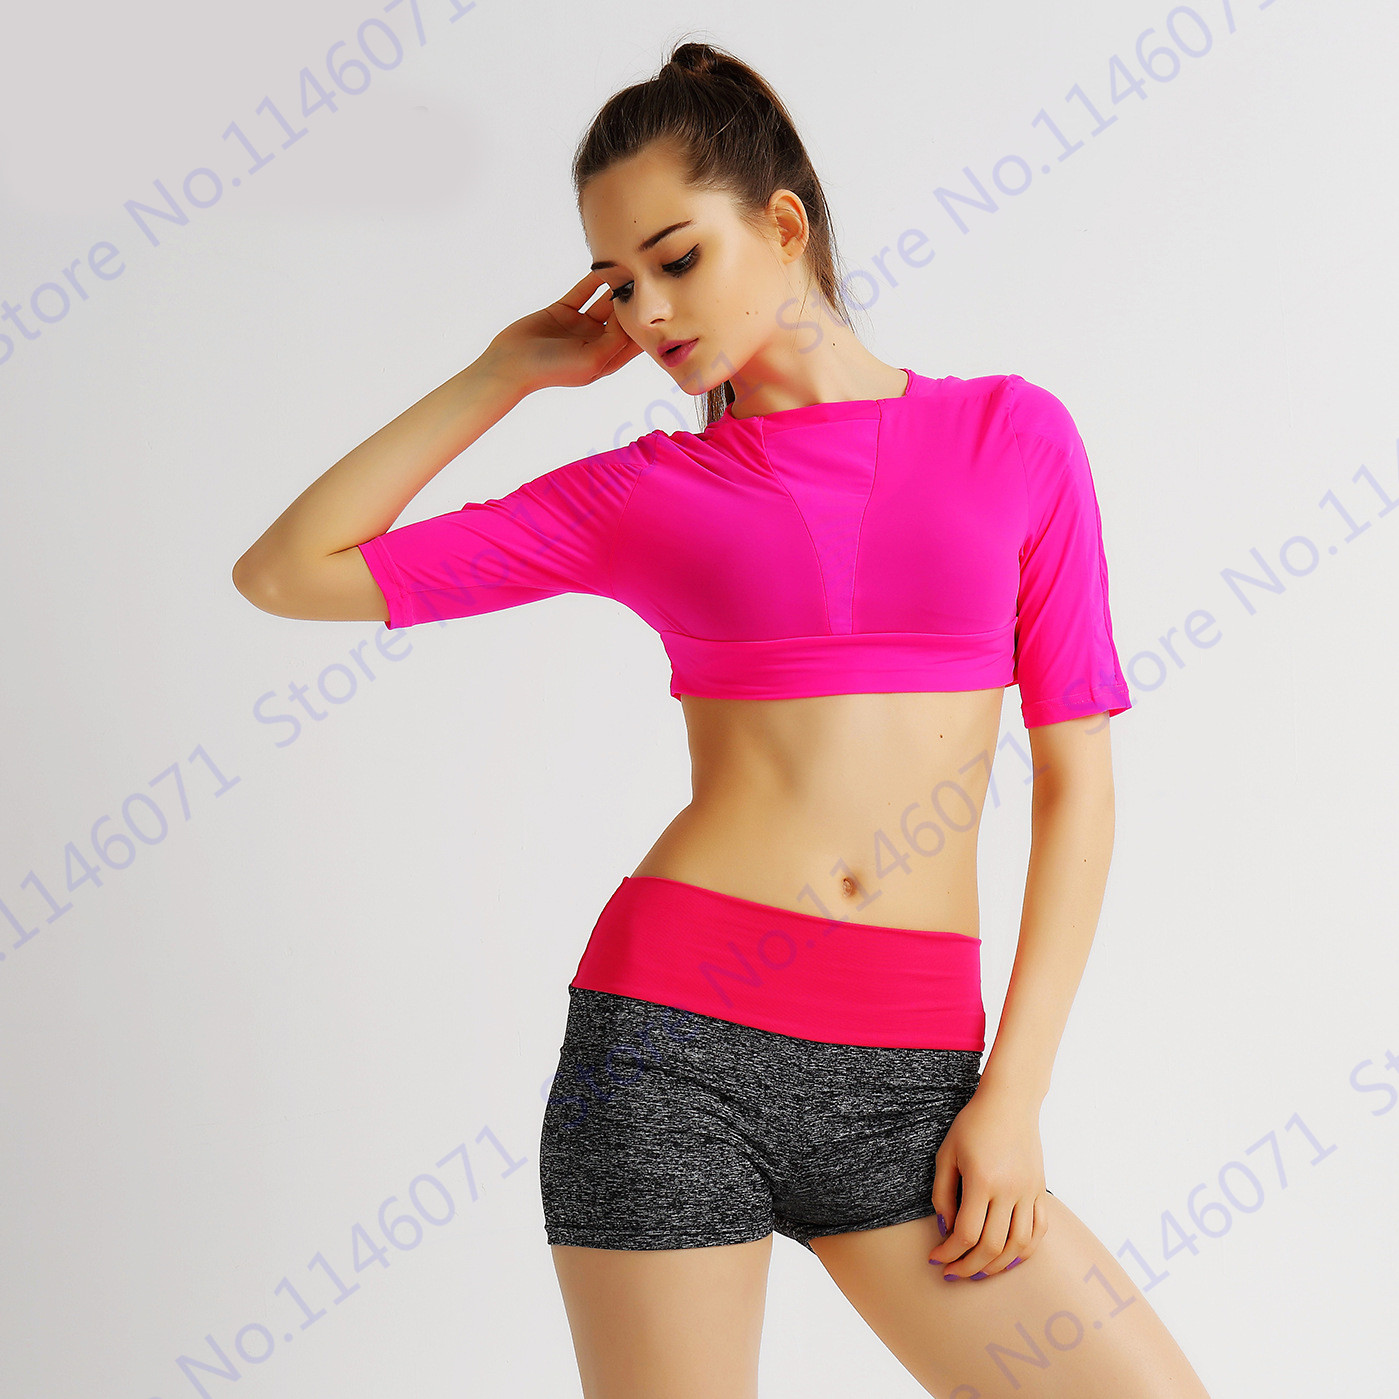 8f38c6fa2a5 Rose Red Running Shirts Cropped Top Pink Peach Fitness Crop Top Candy Color  Sports Shirt Half Sleeved Yoga Shirt Ladies-in Yoga Shirts from Sports ...